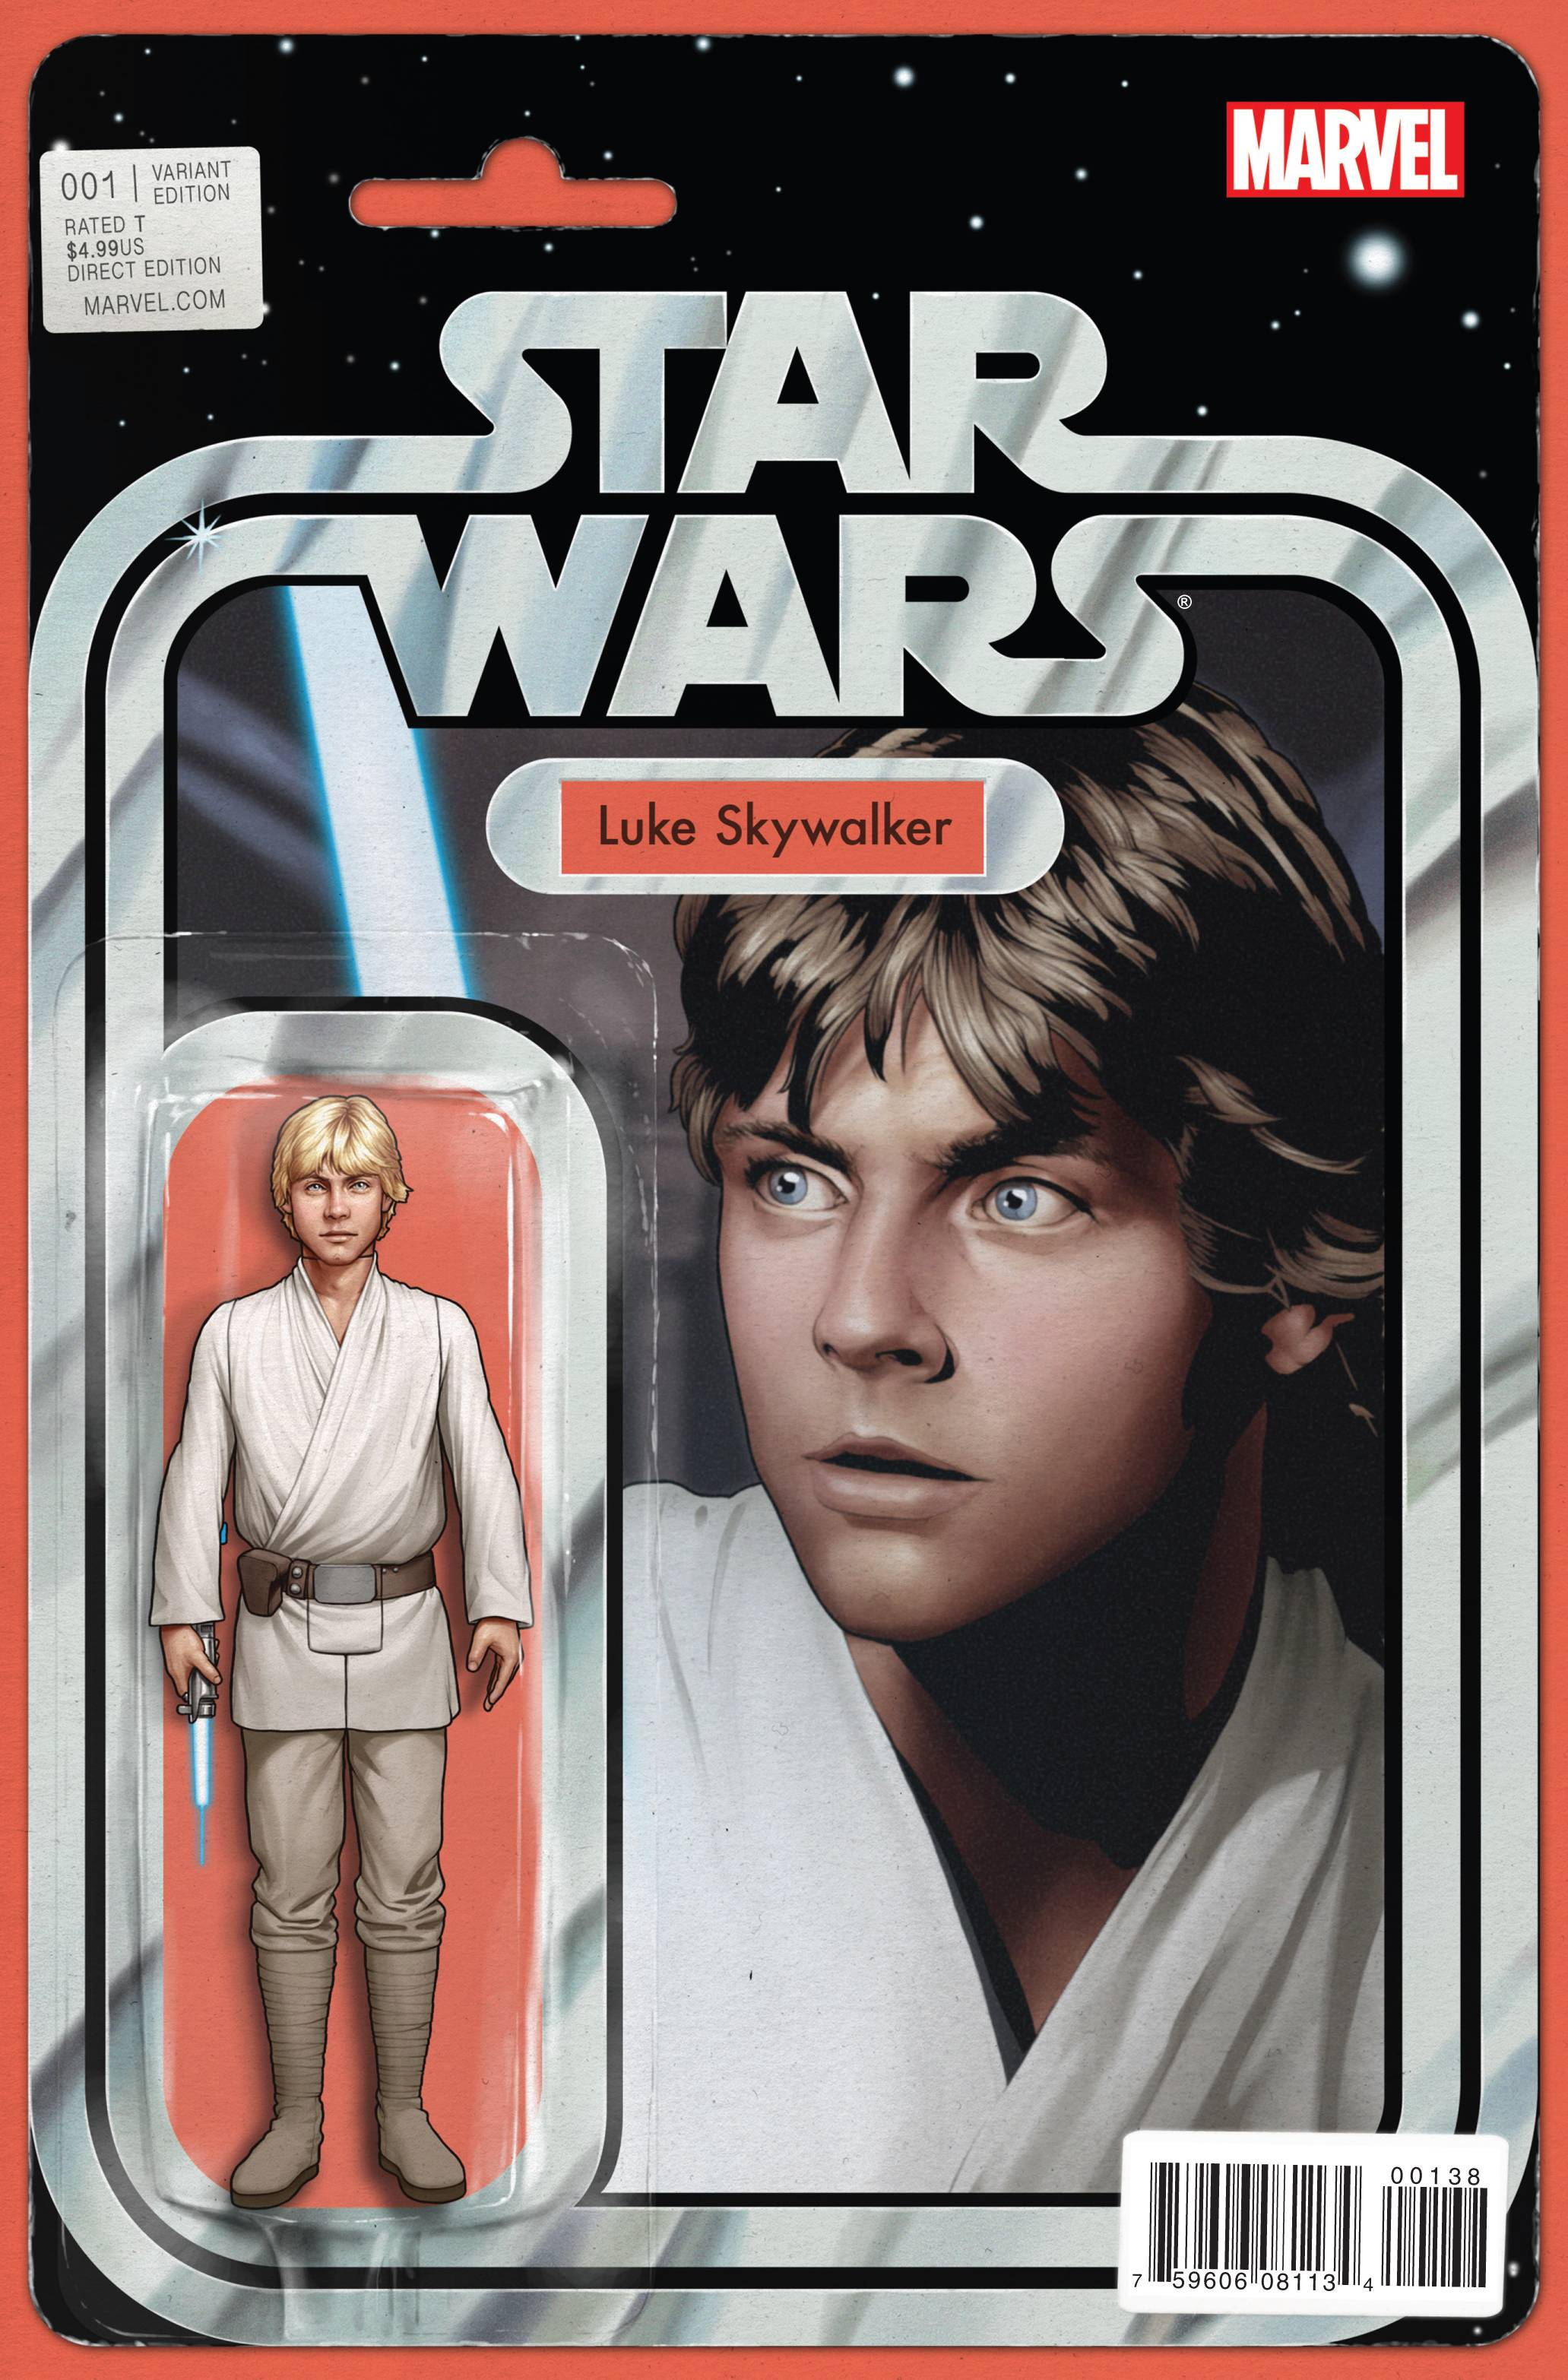 Star Wars #1 (John Tyler Christopher Action Figure Variant Cover) (14.01.2015)